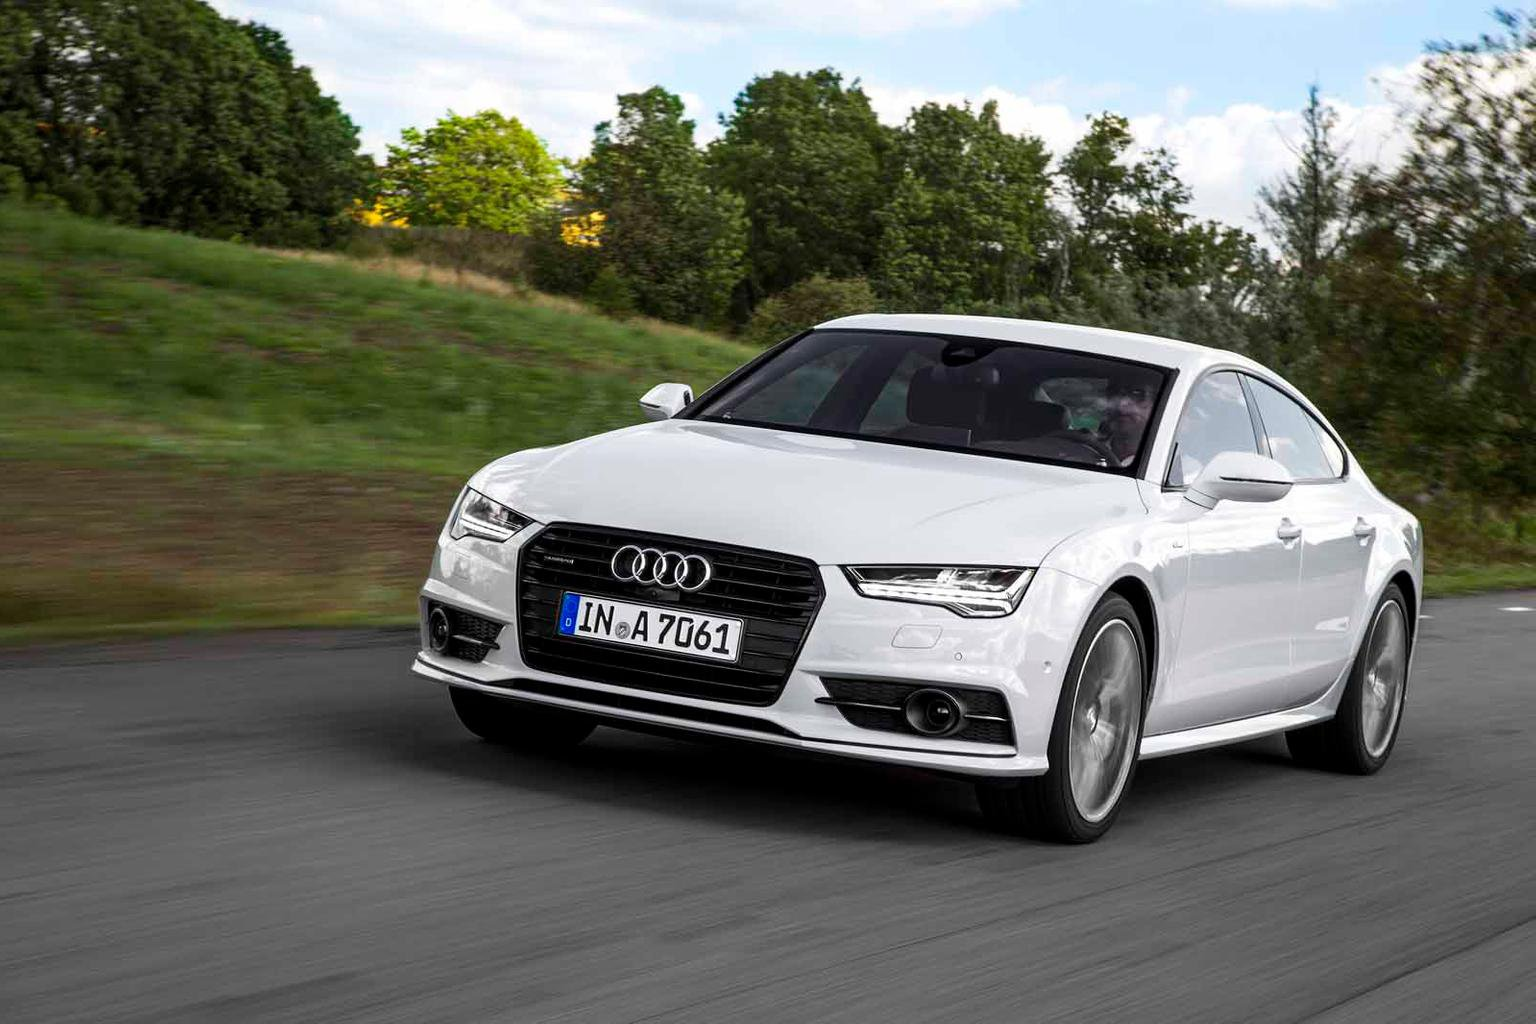 Deal of the day: Audi A7 Ultra